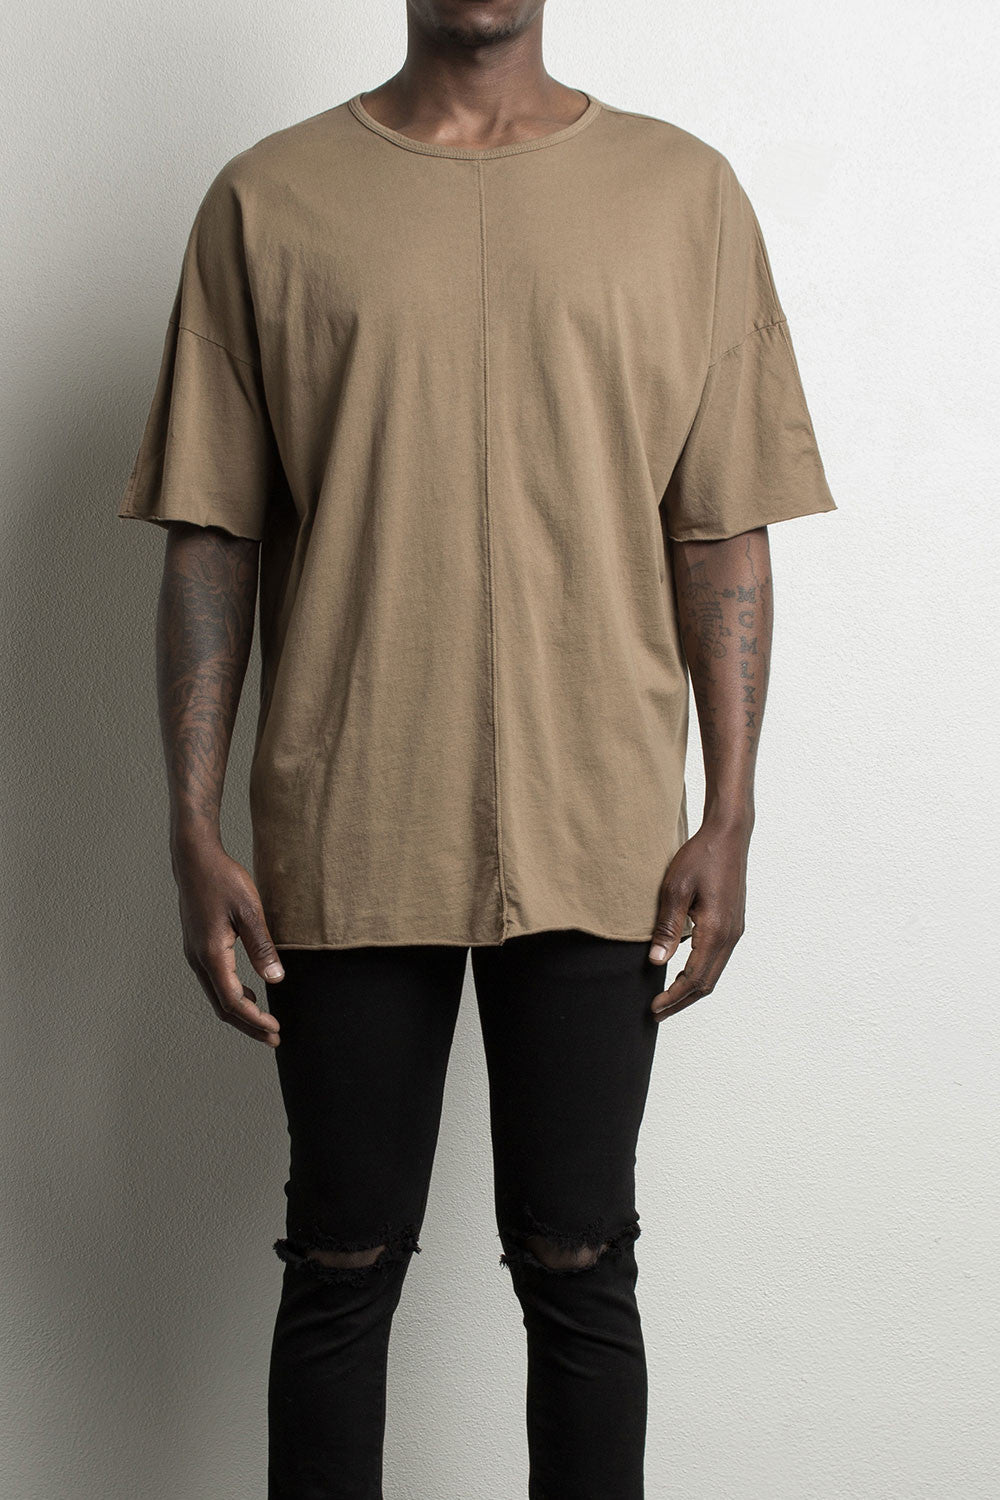 daniel patrick - oversized tee - COMMON  - 1